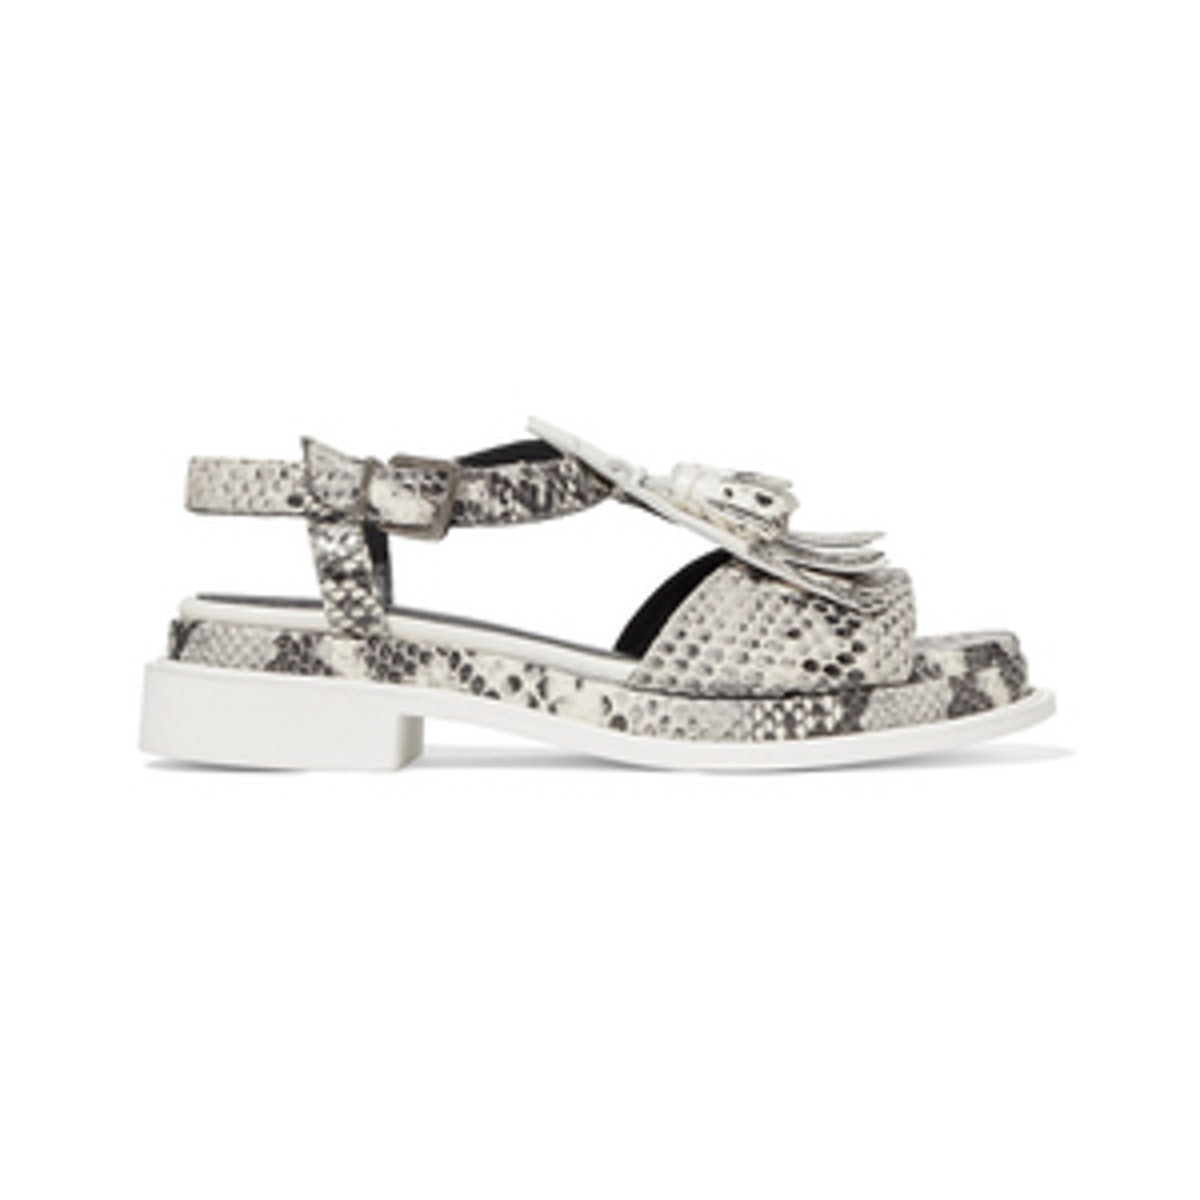 Coco Fringed Patent-Leather Sandals